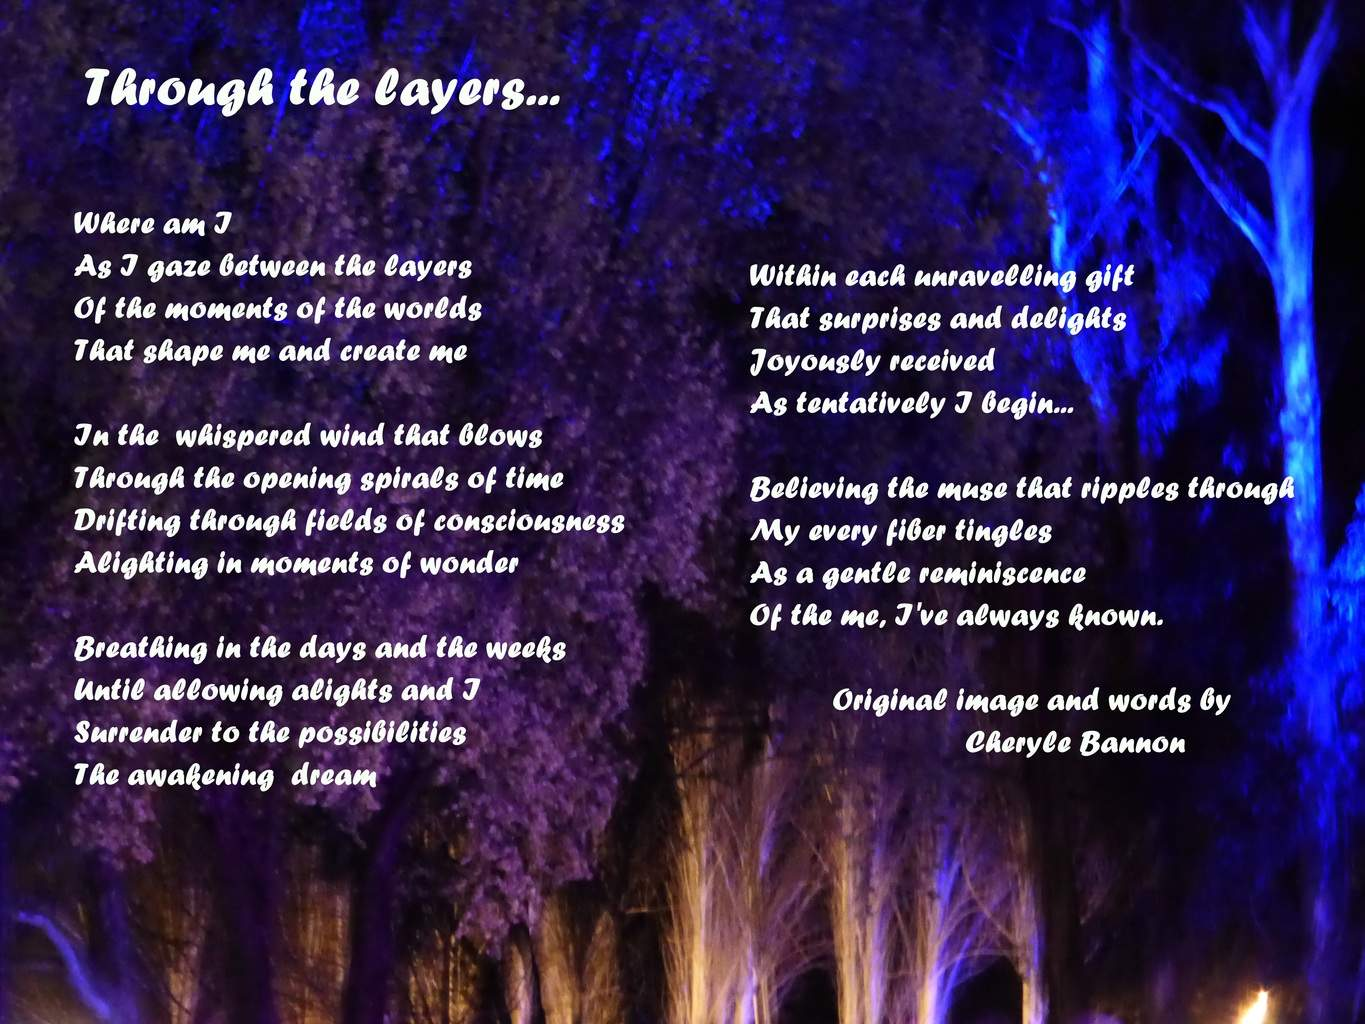 Musings...original photo and text by Cheryle Bannon